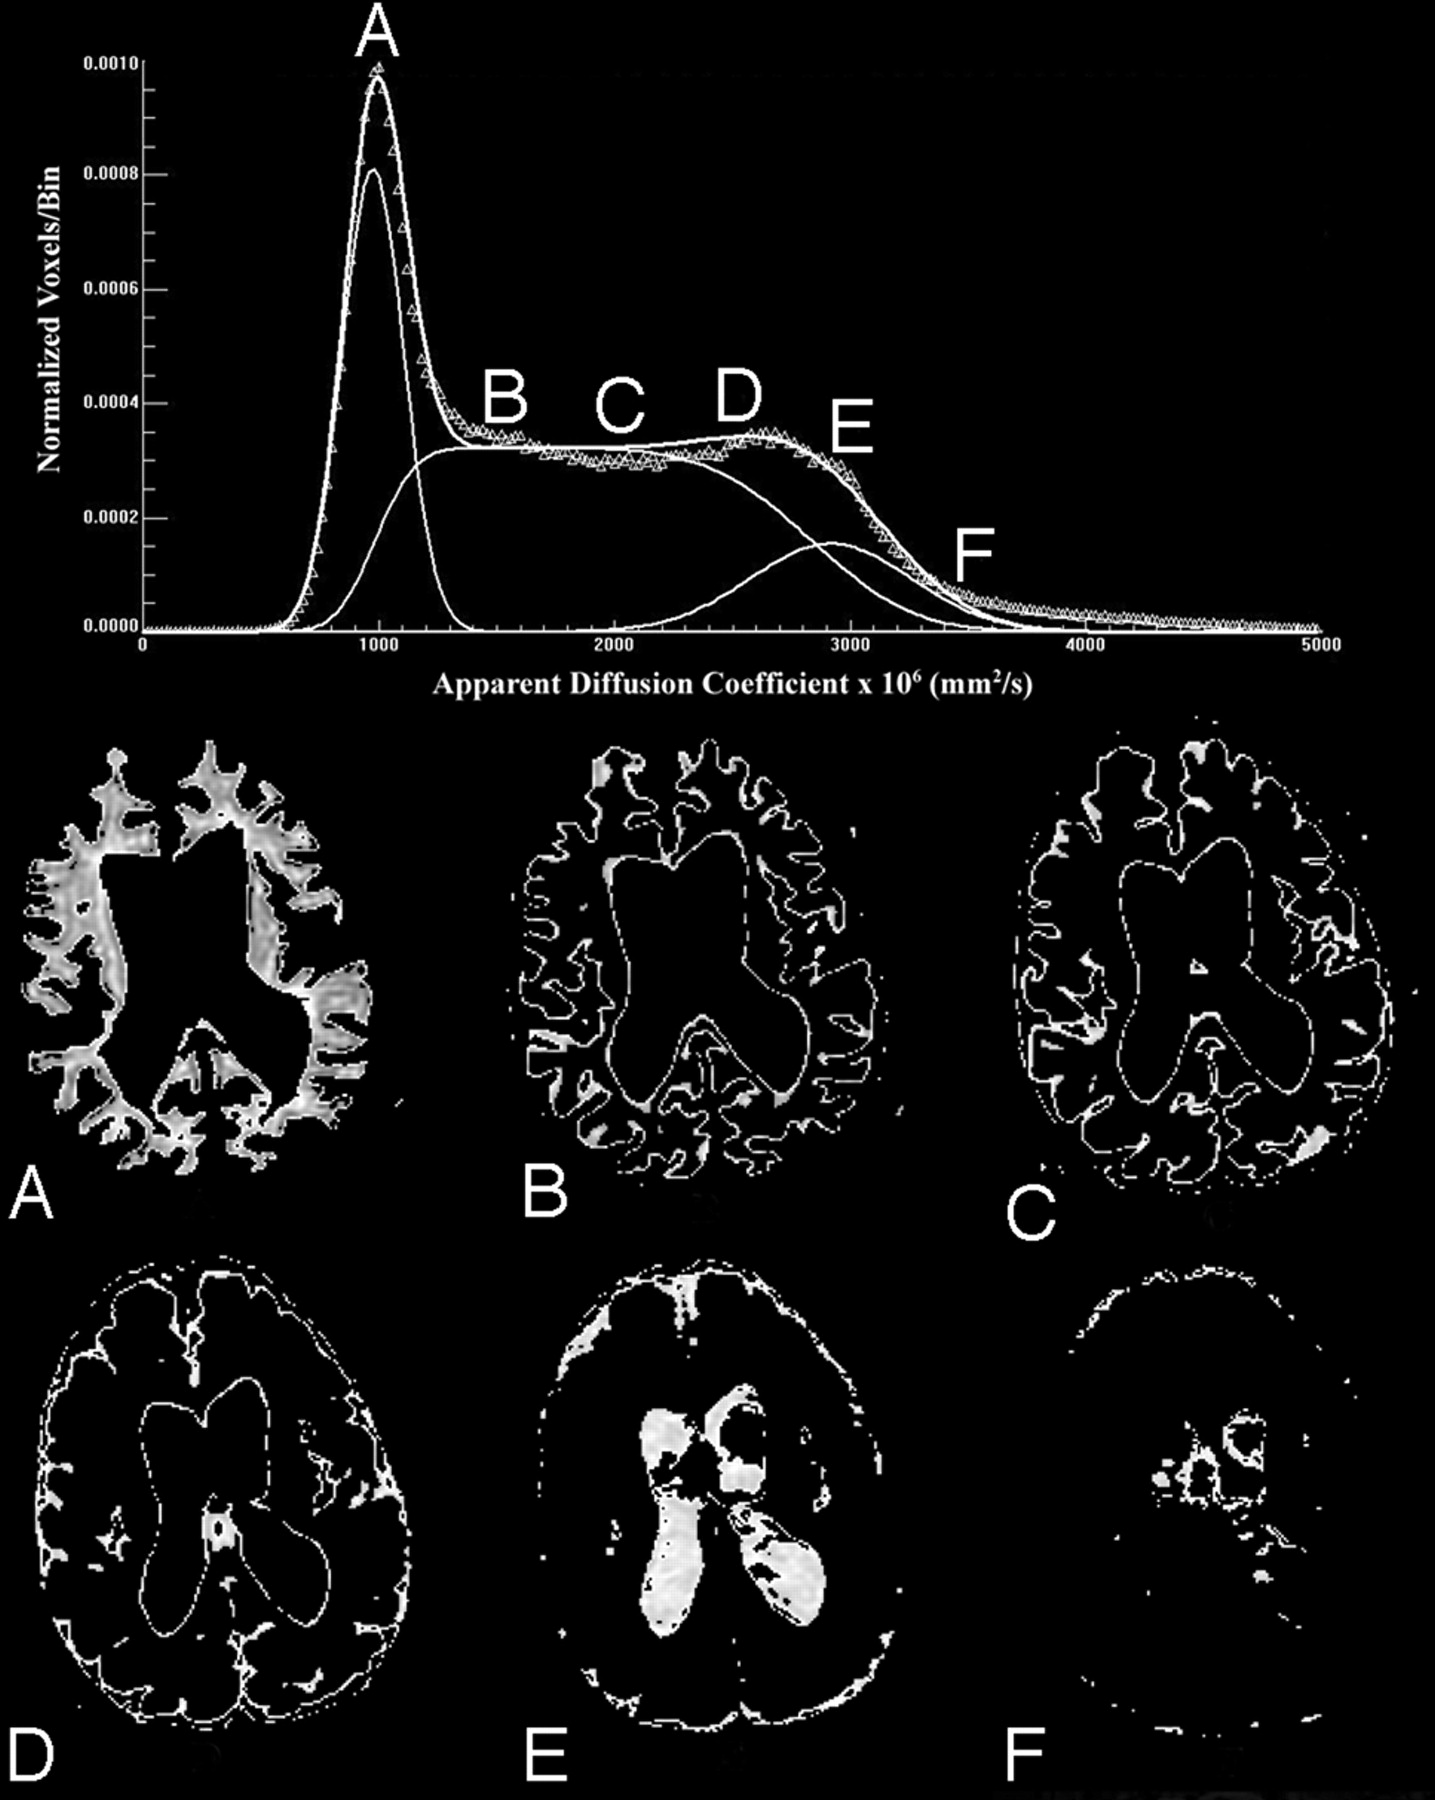 effect of fat assessment of apparent diffusion coefficient Mr imaging assessment of lumbar intervertebral disk degeneration and age-related changes: apparent diffusion coefficient versus t2 quantitation.